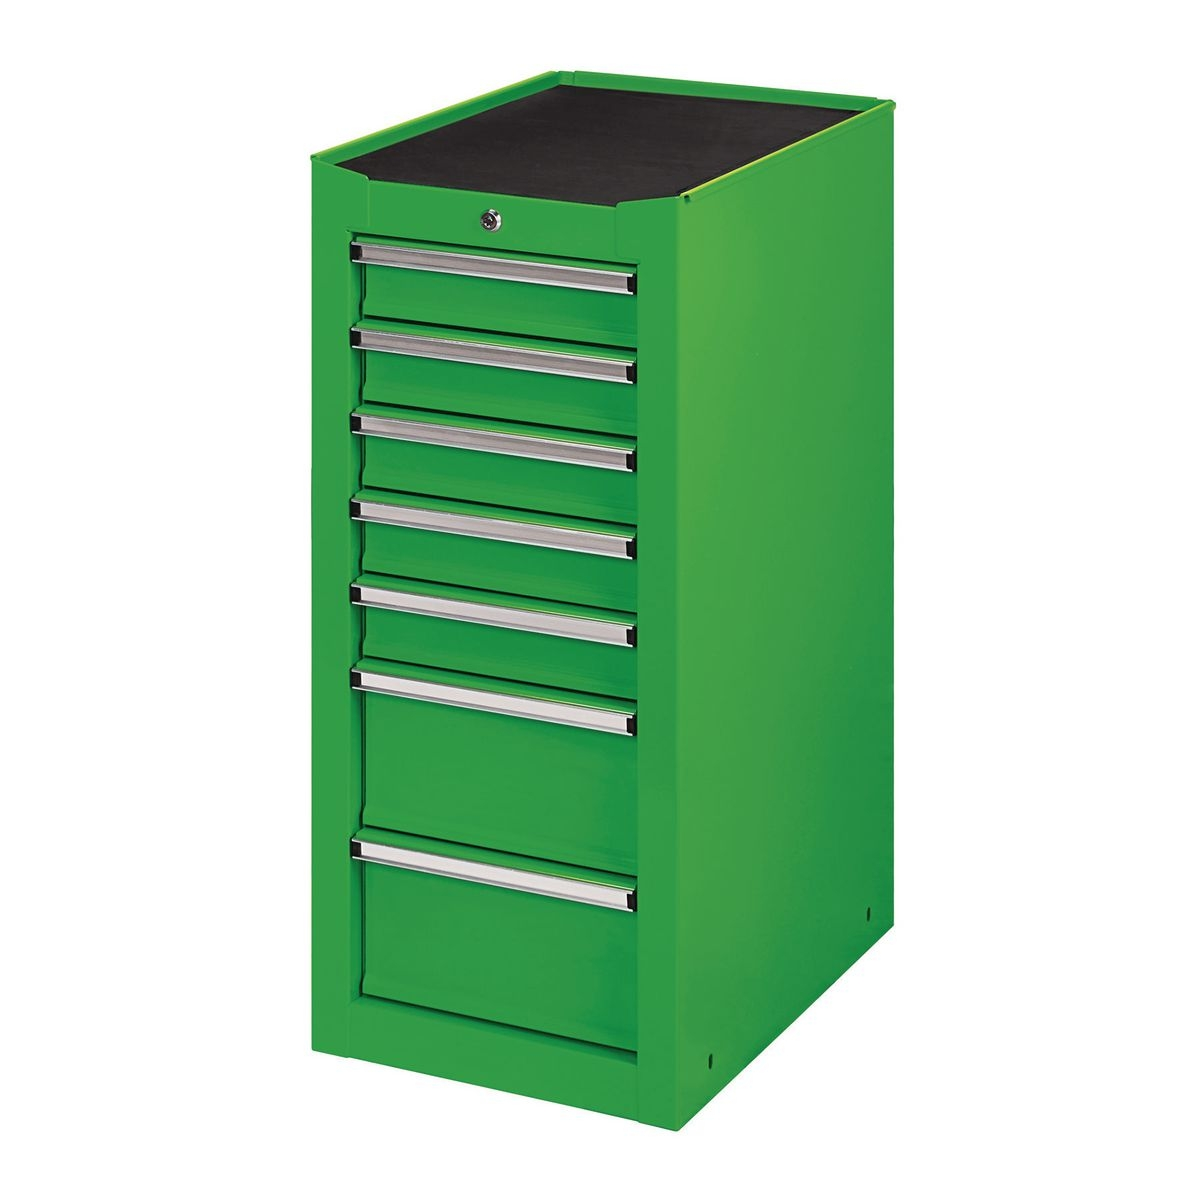 U.S. GENERAL 14.5 in. Green End Cabinet - Item 64971